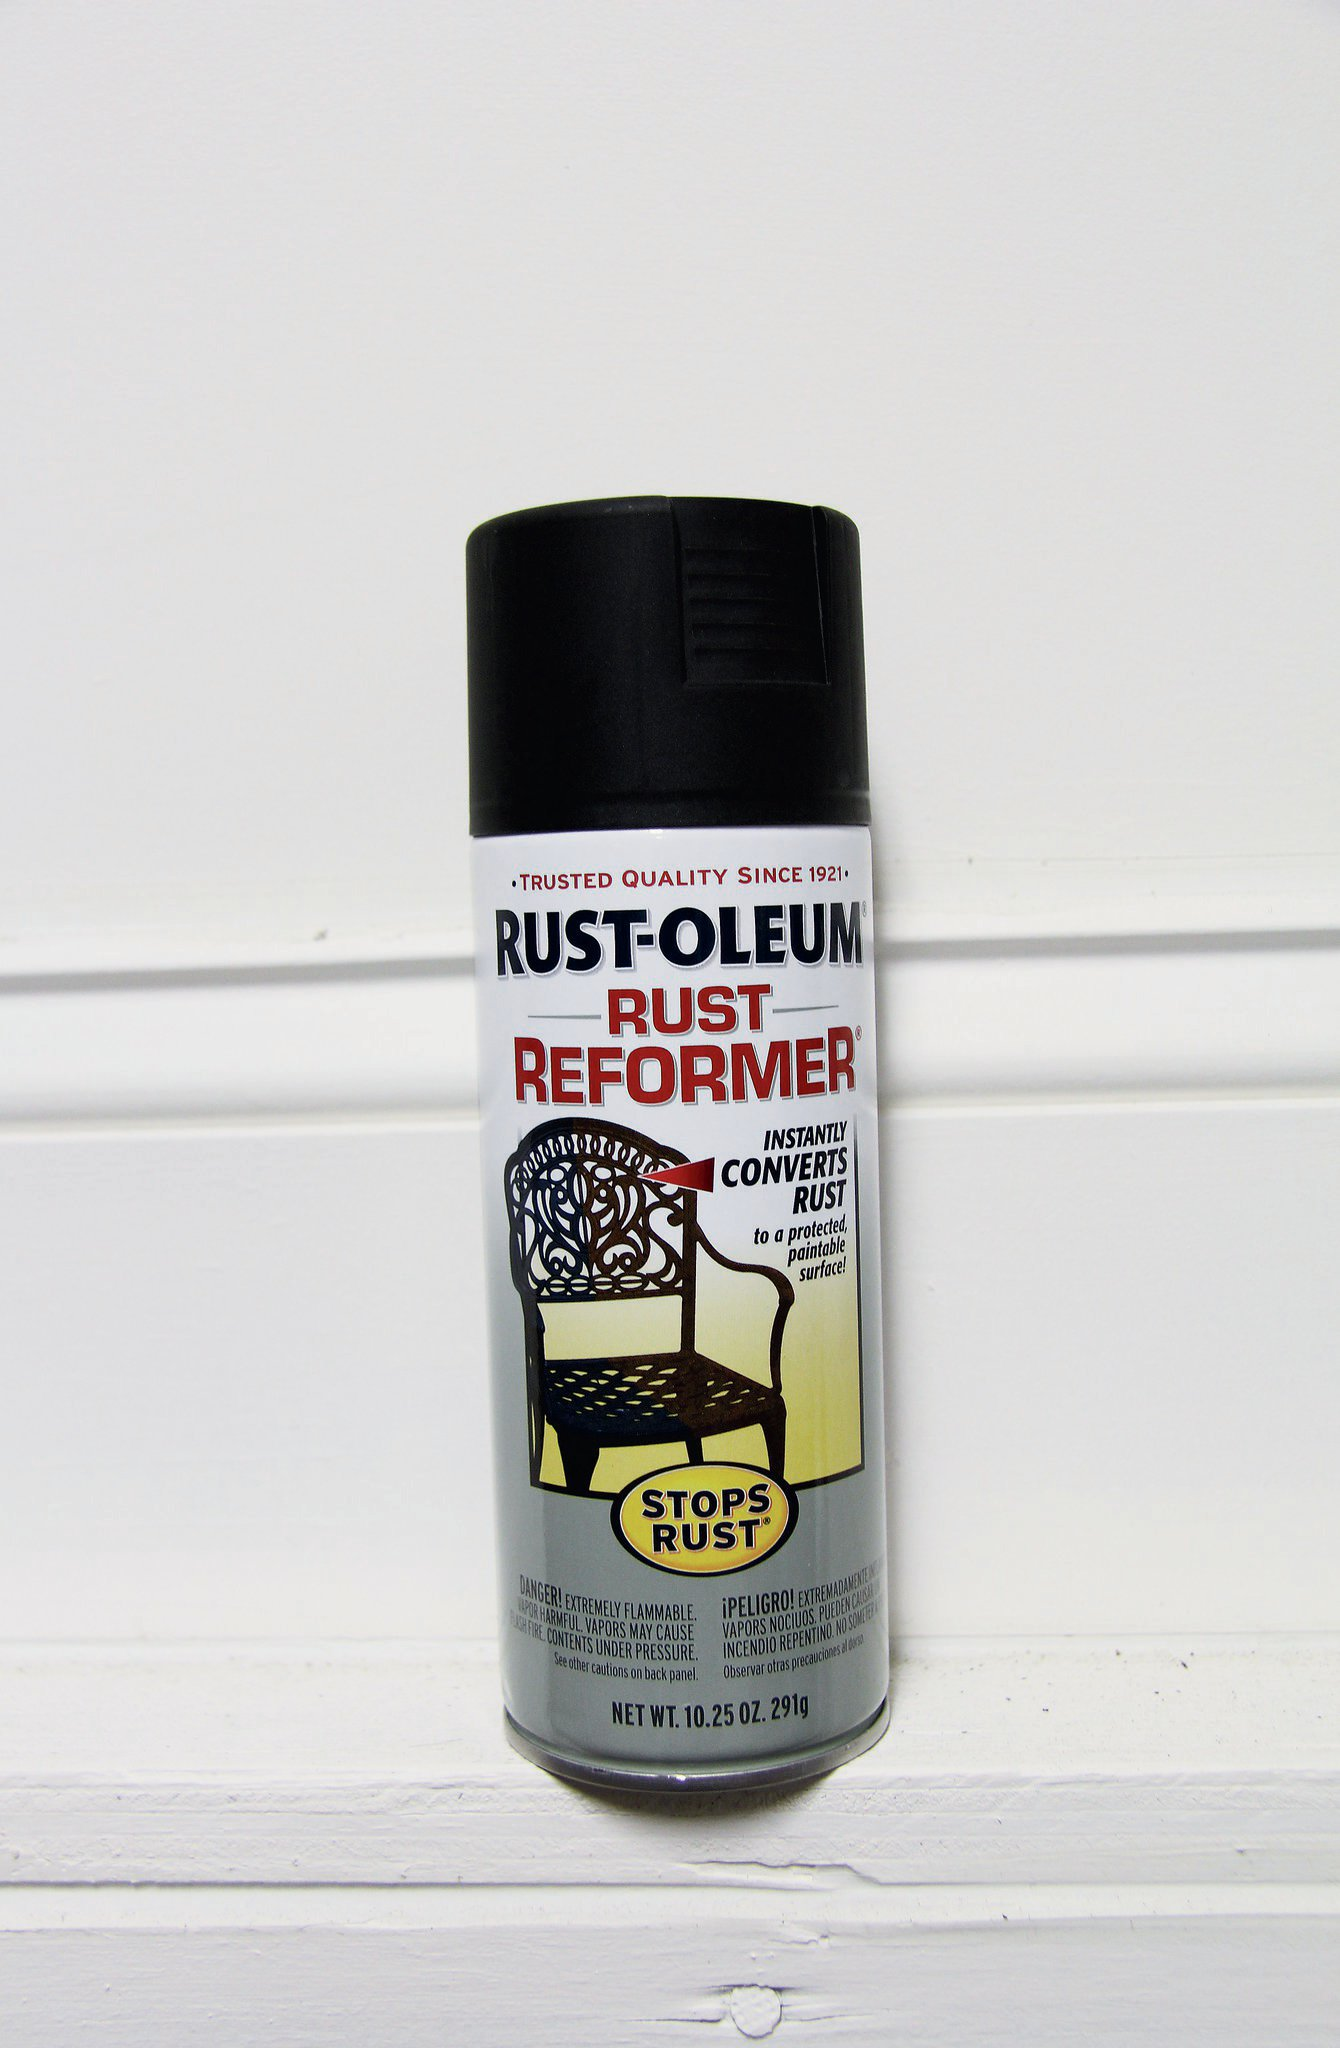 We don't put a lot of trust in rust-reformer spray paint, but we do use it from time to time. We find it most helpful on under carriage parts to keep them looking more presentable. A few bucks for a spray can save you a lot of money down the road.